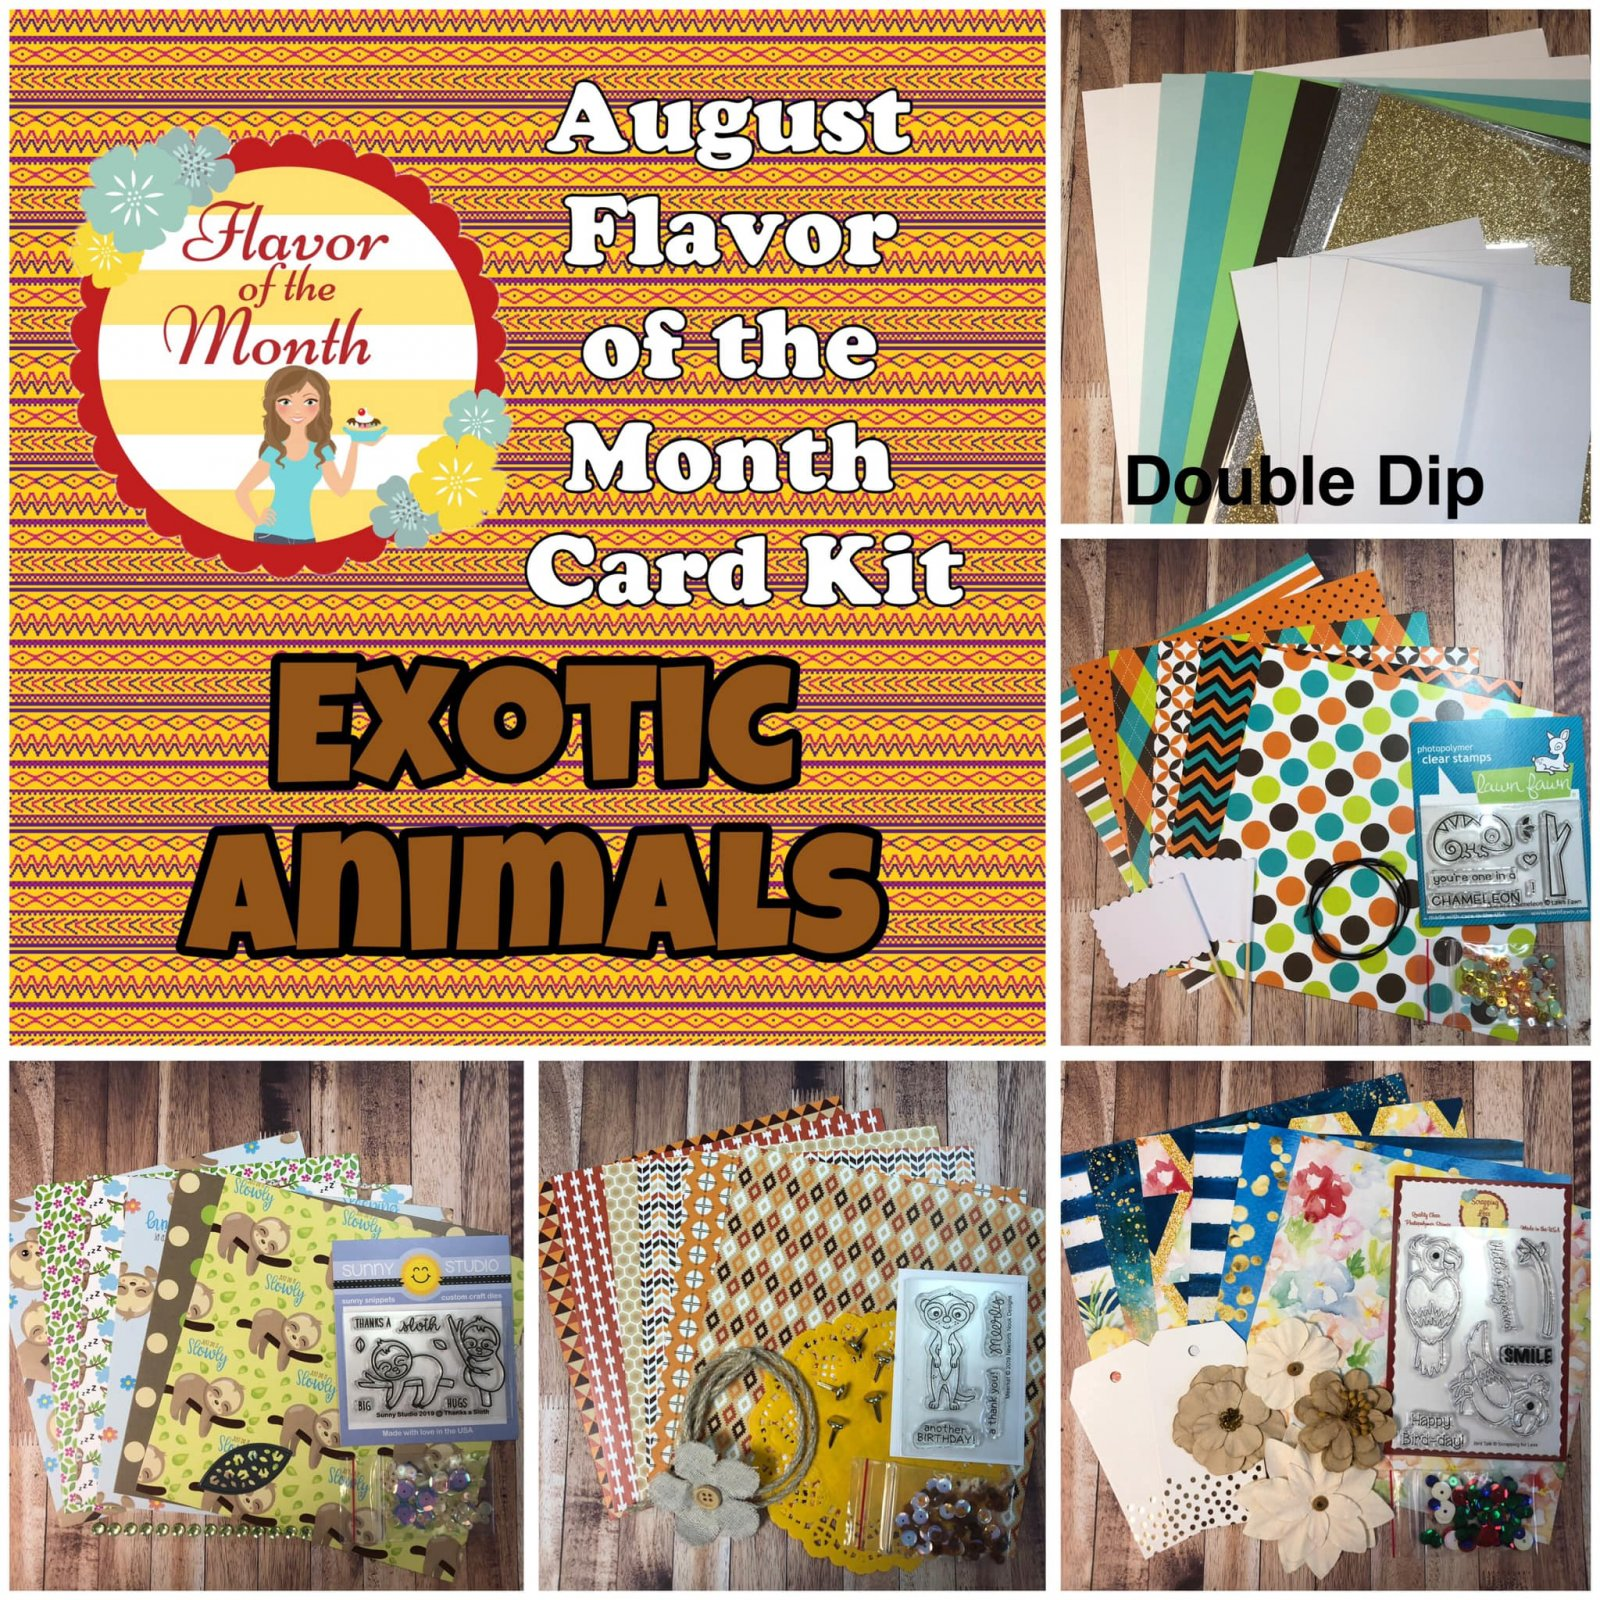 August Double Dip Flavor of the Month Exotic Animals